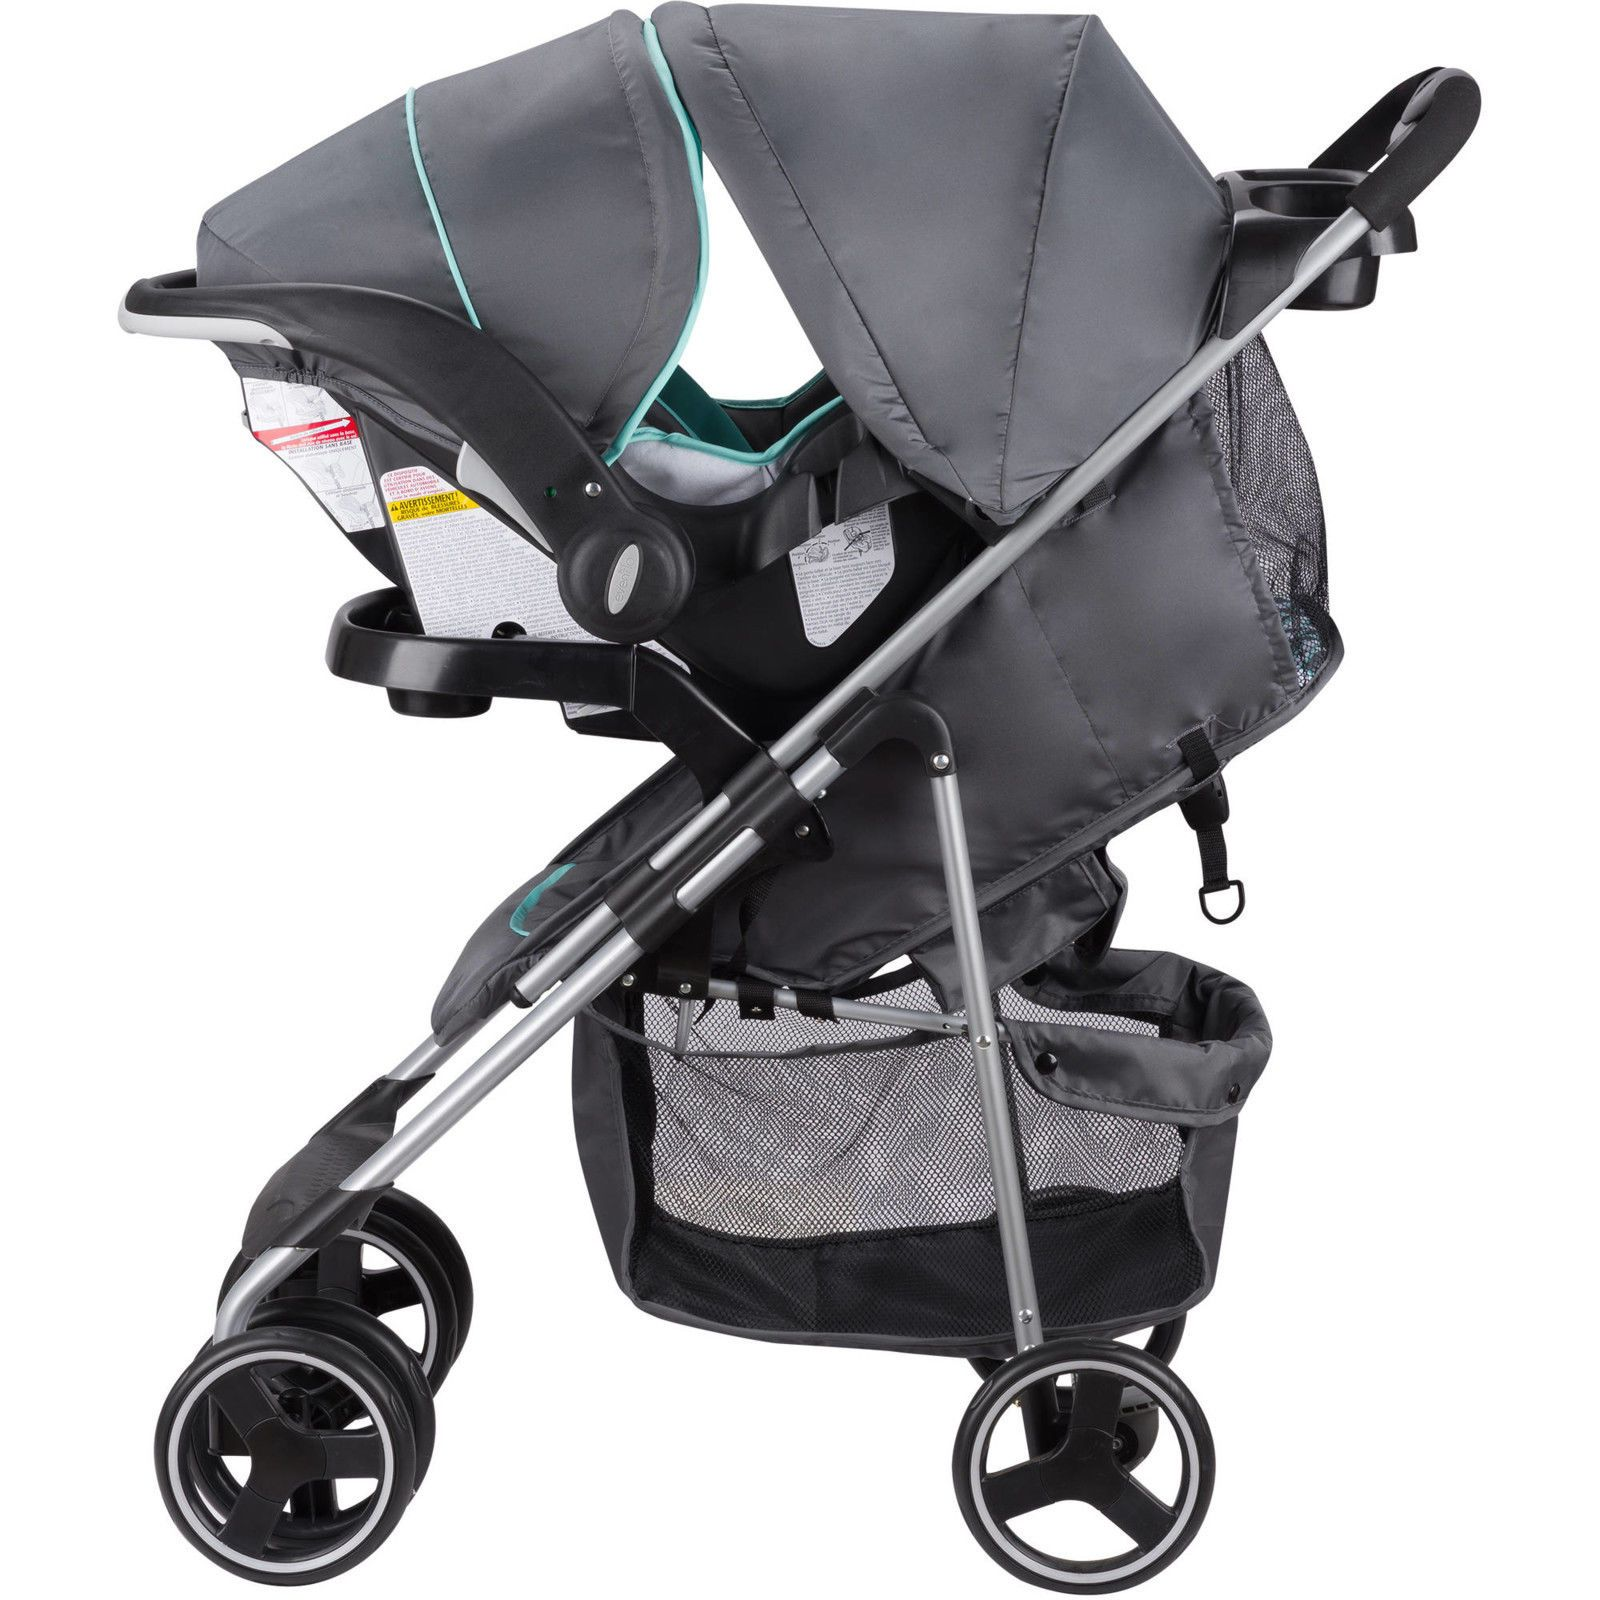 Evenflo Vive Safety Car Seat and Stroller Travel System